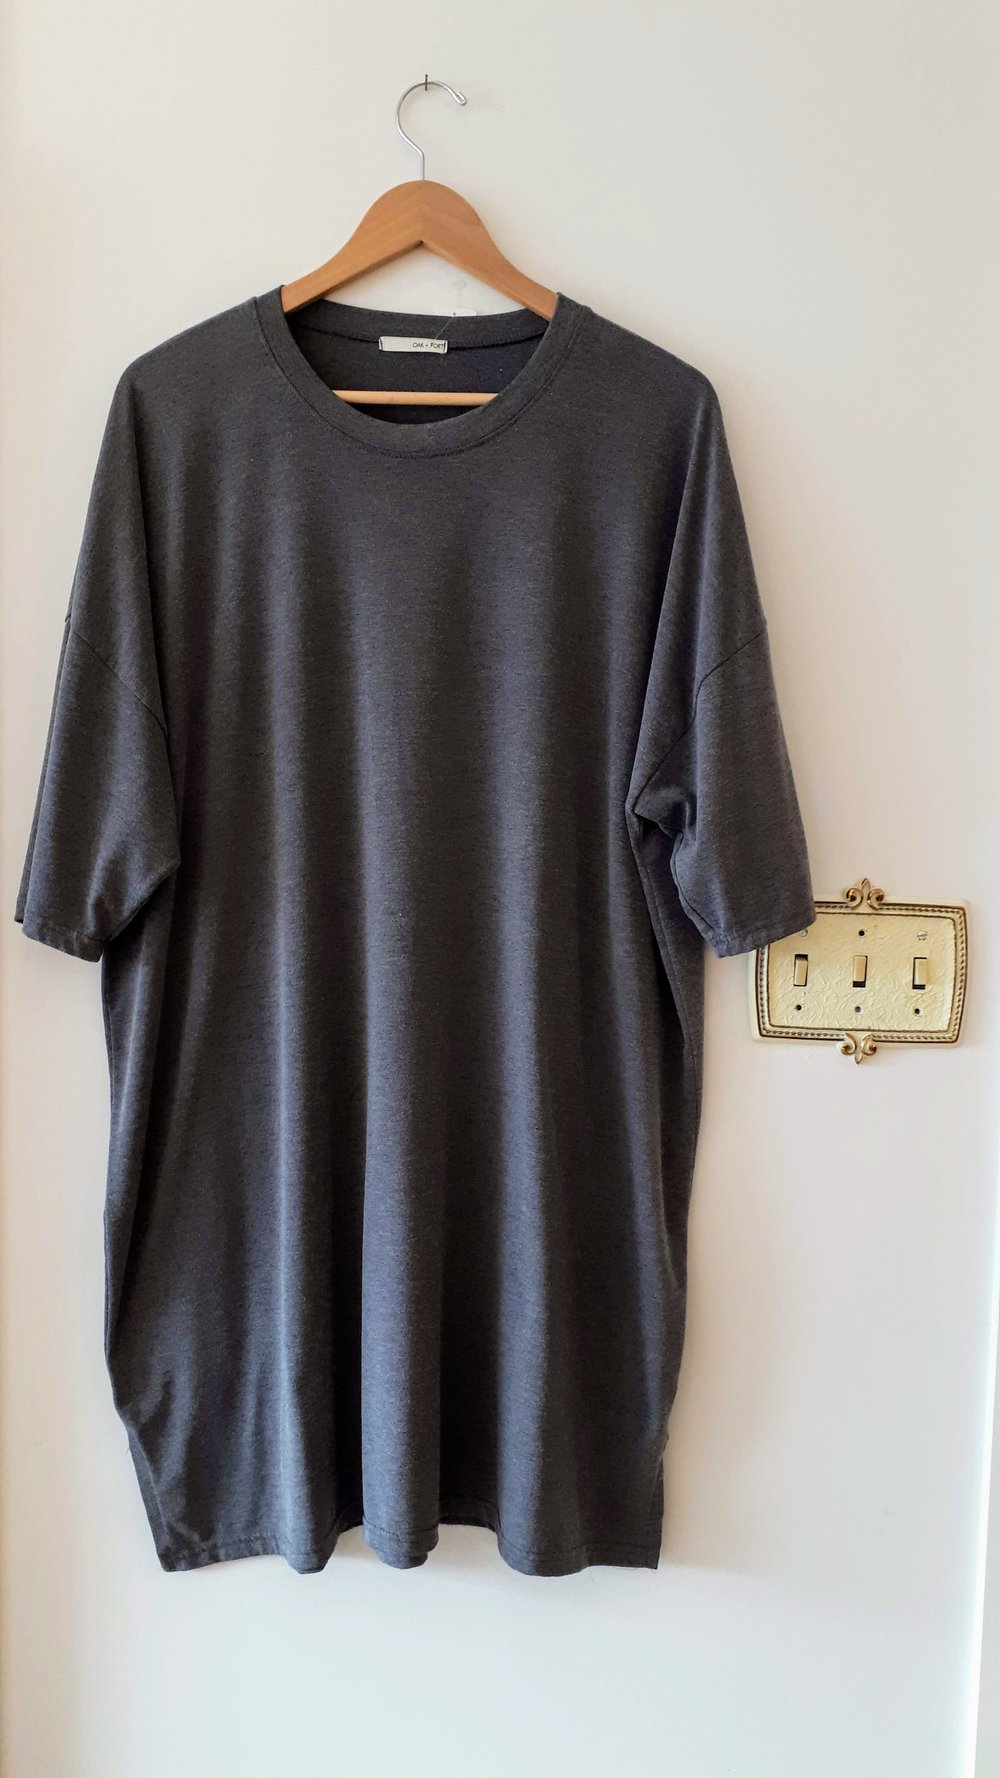 Oak+Fort dress; Size M, $52